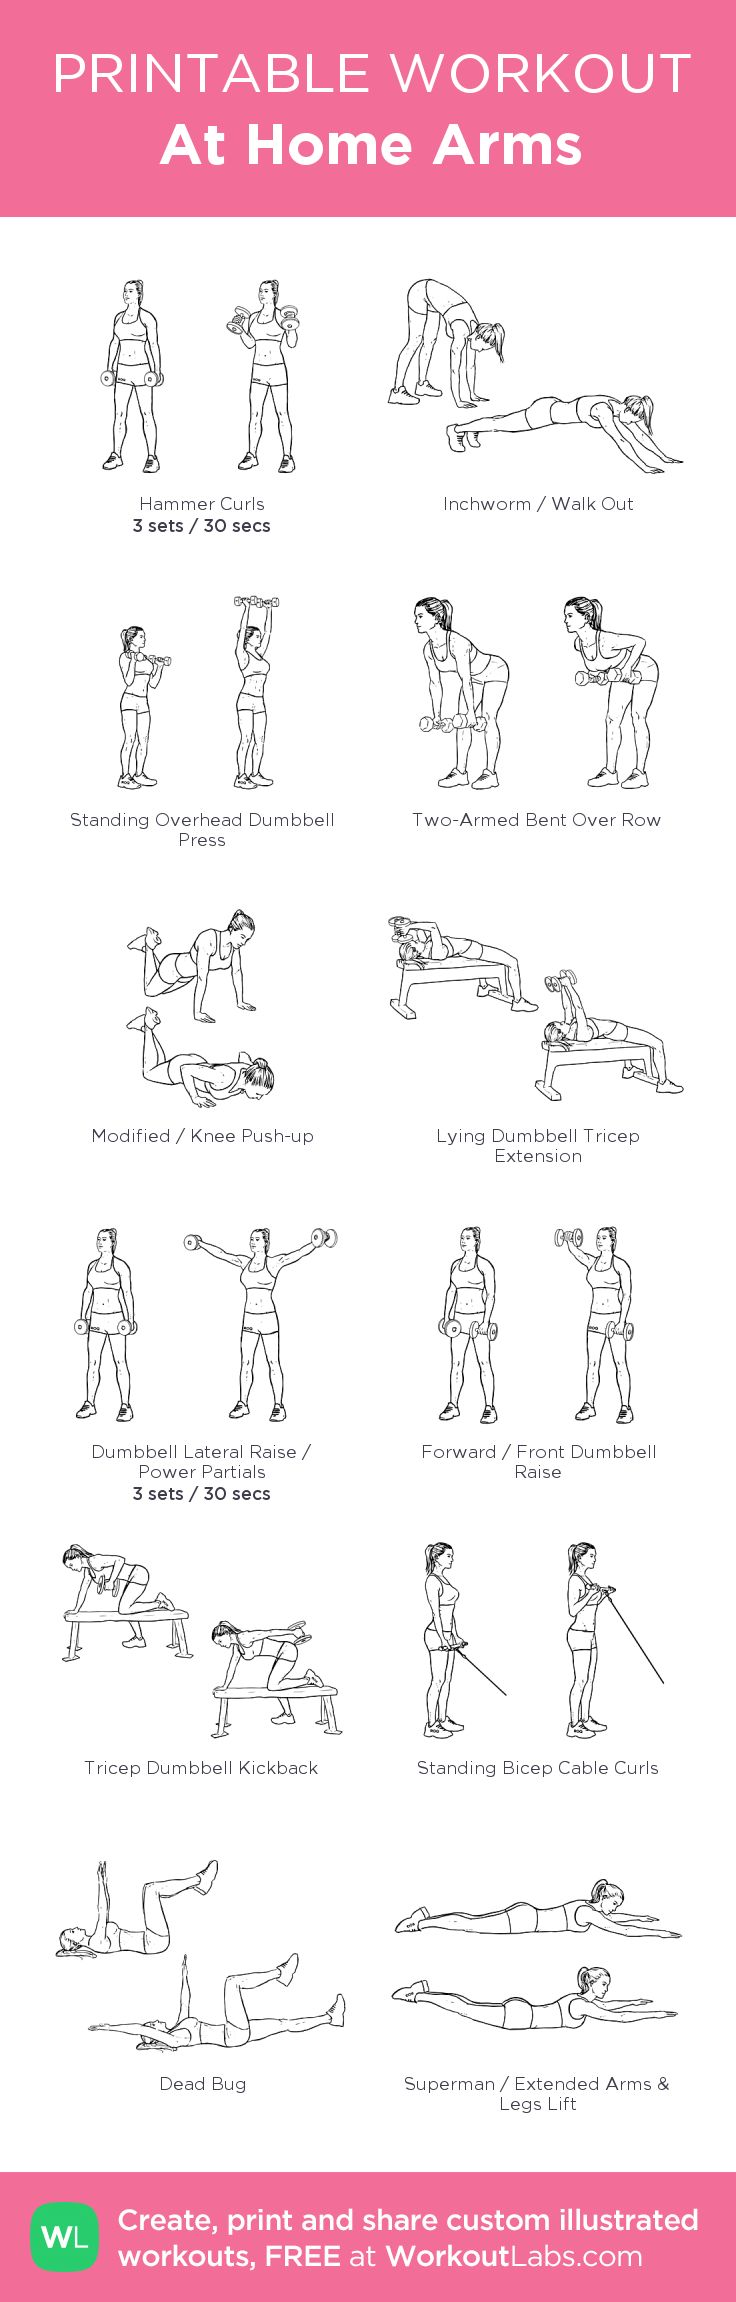 At Home Arms: my visual workout created at WorkoutLabs.com • Click through to customize and download as a FREE PDF! #customworkout